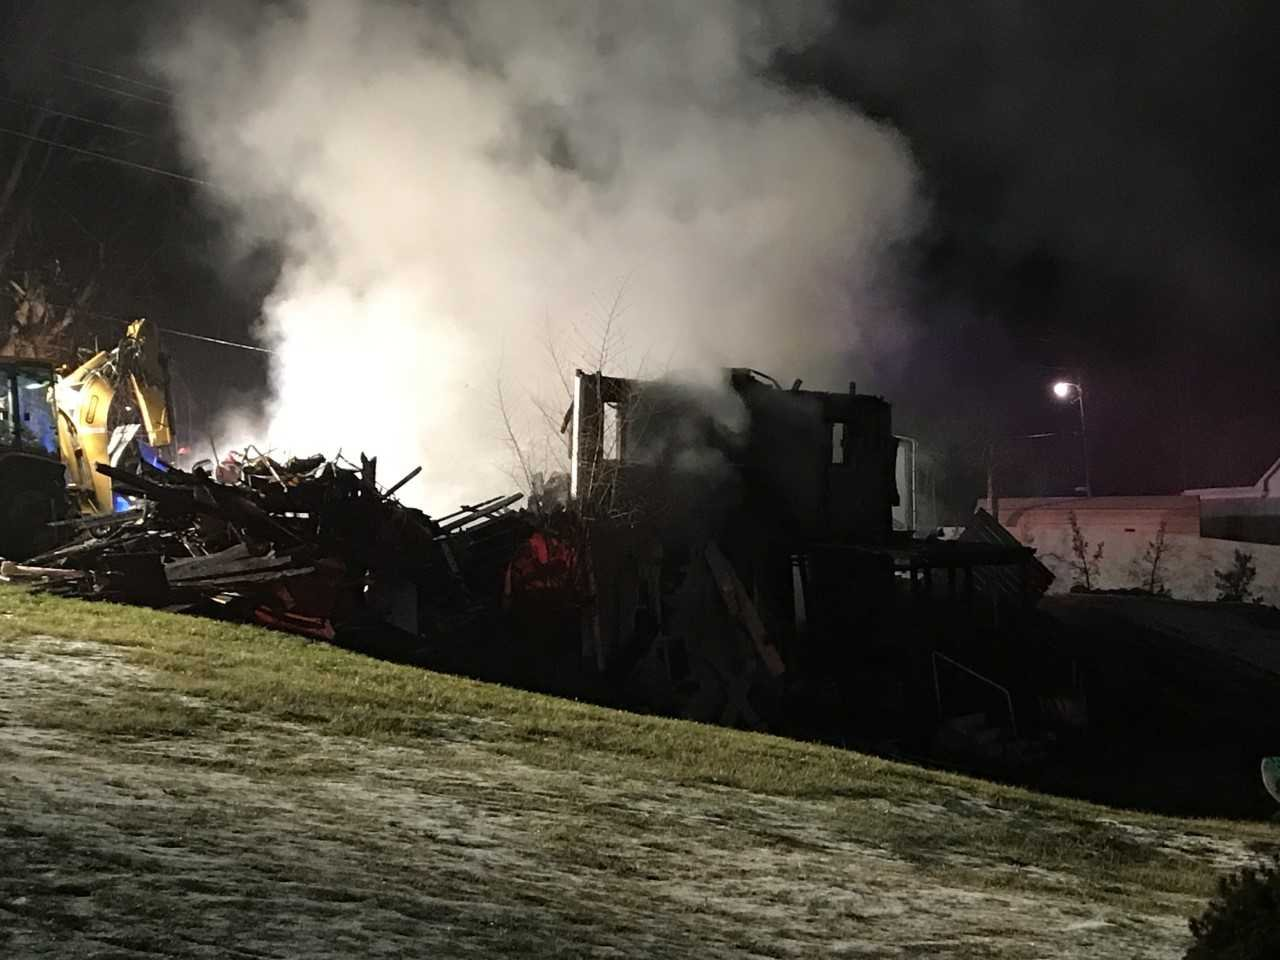 The fire completely destroyed the house.